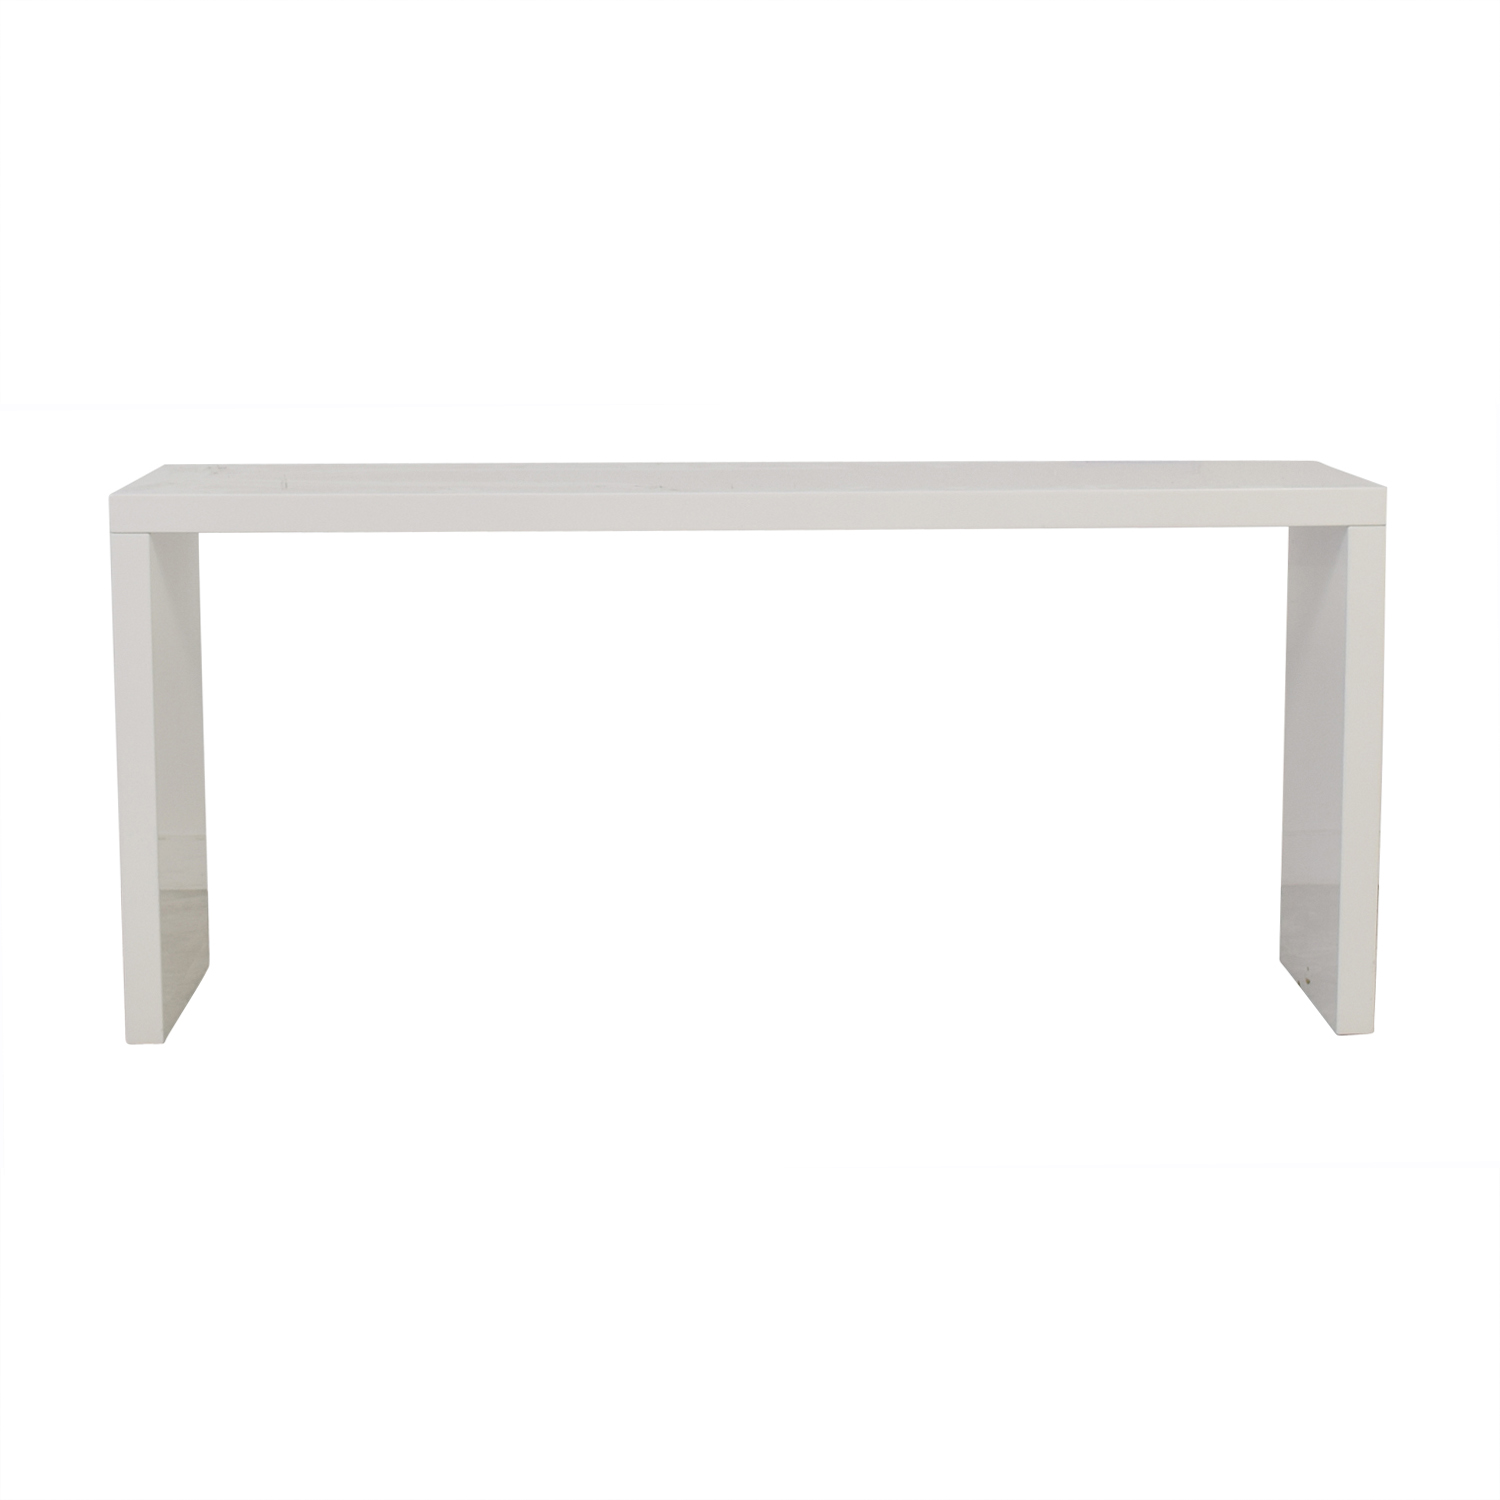 CB2 White Dining Server / Tables